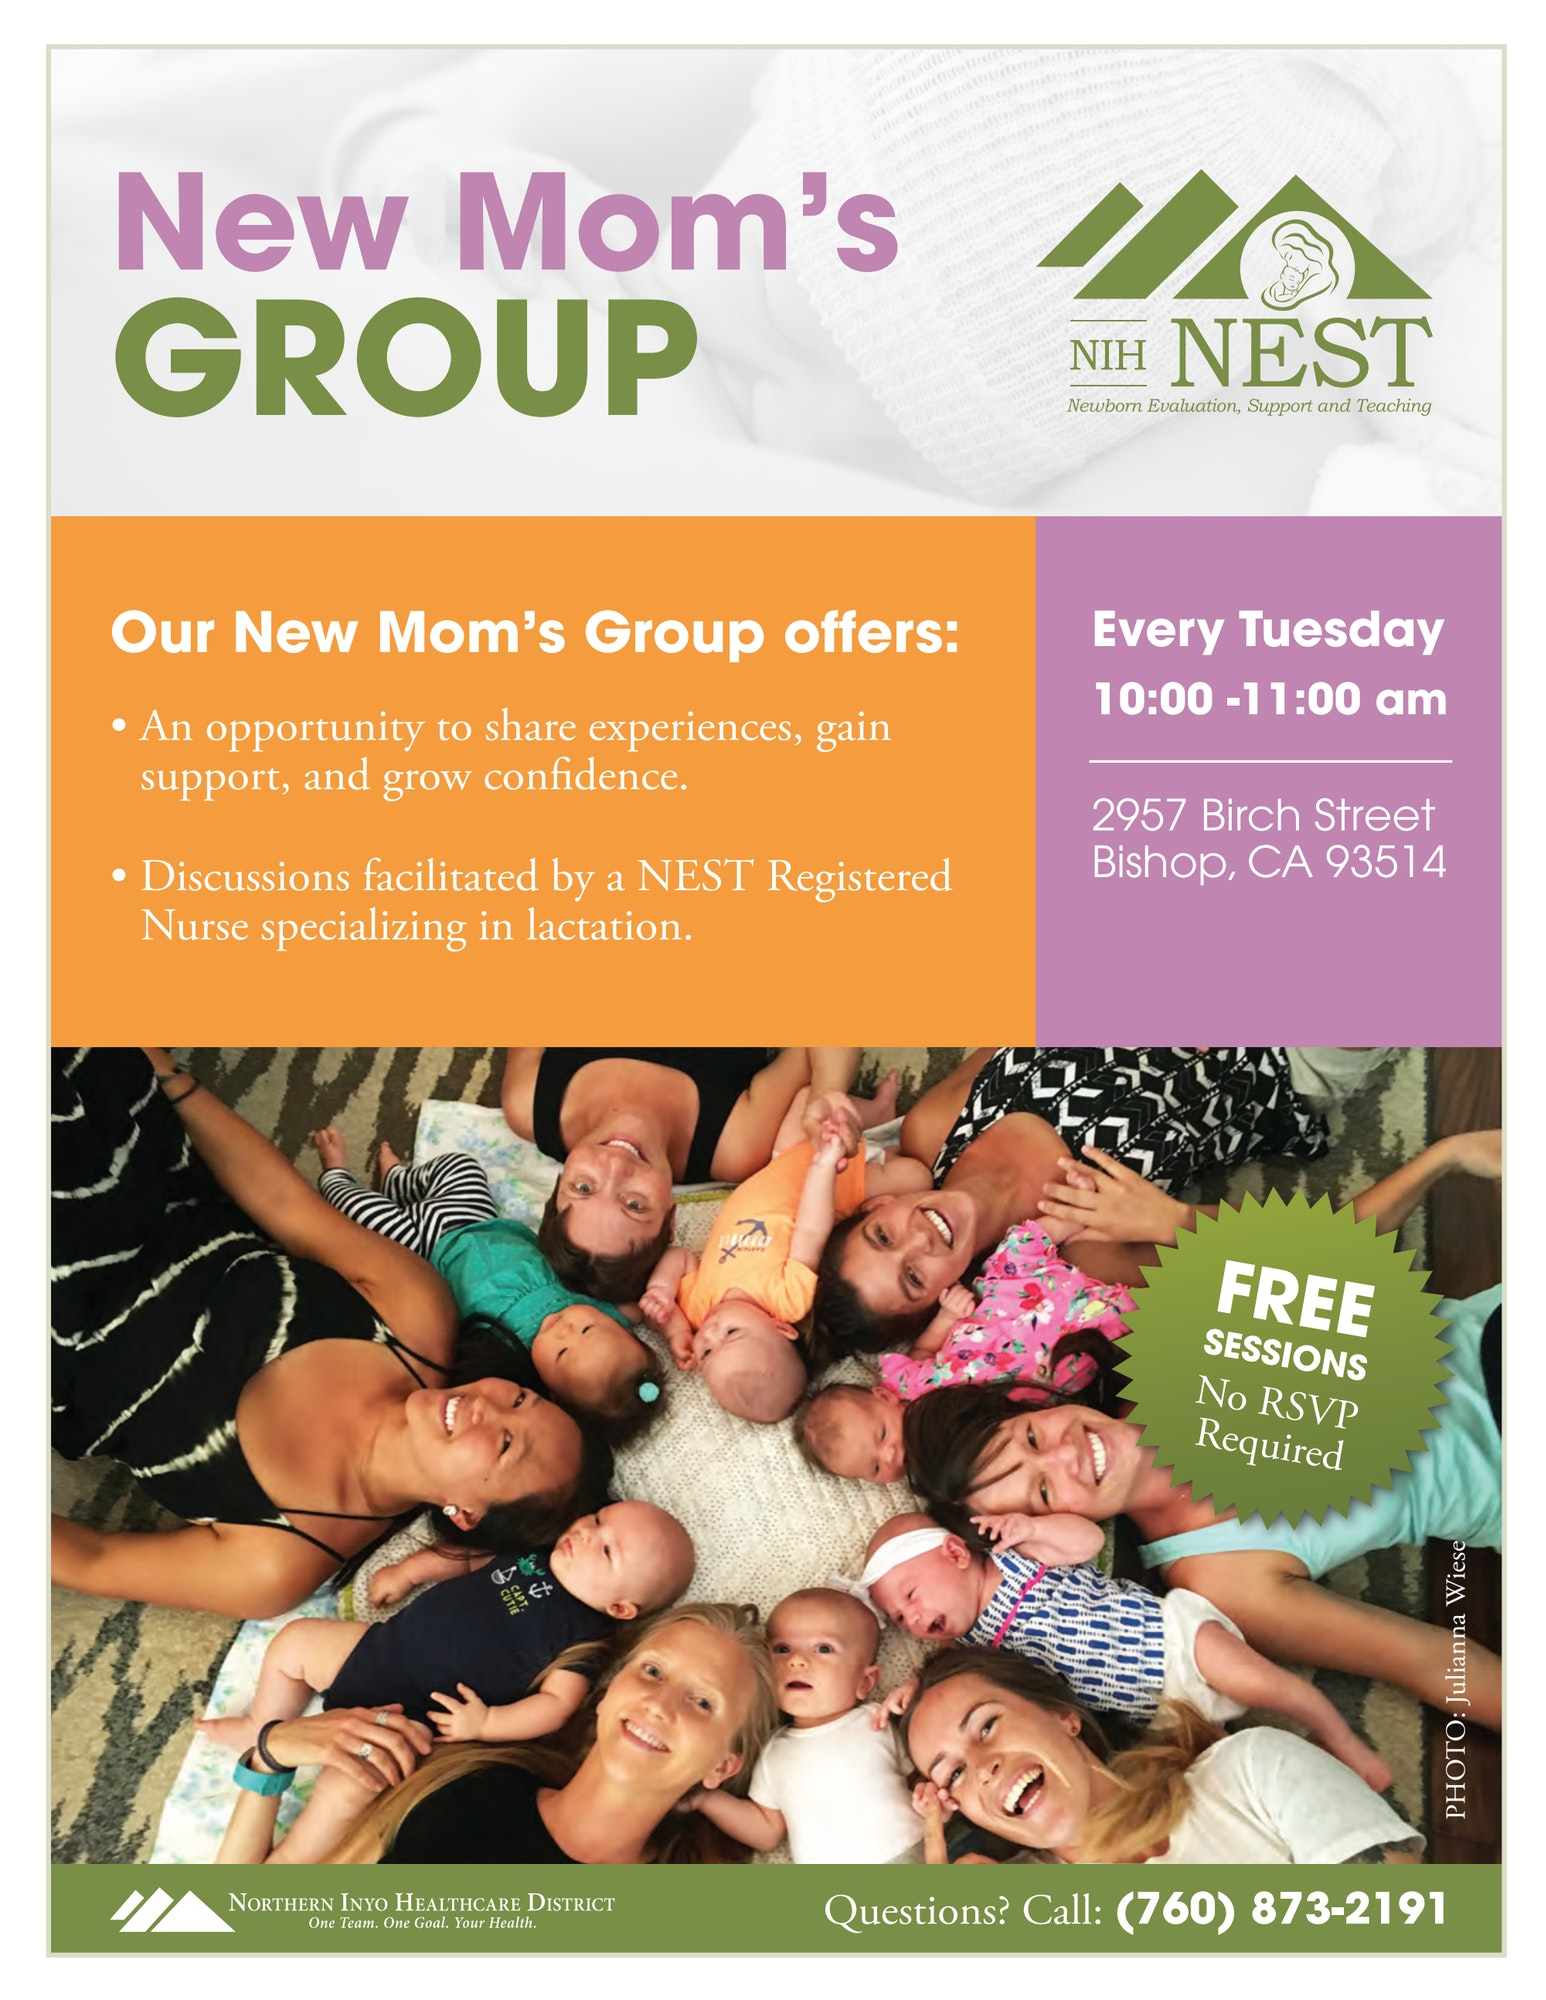 Poster for New Moms Group -- Questions? Call (760) 873-2191